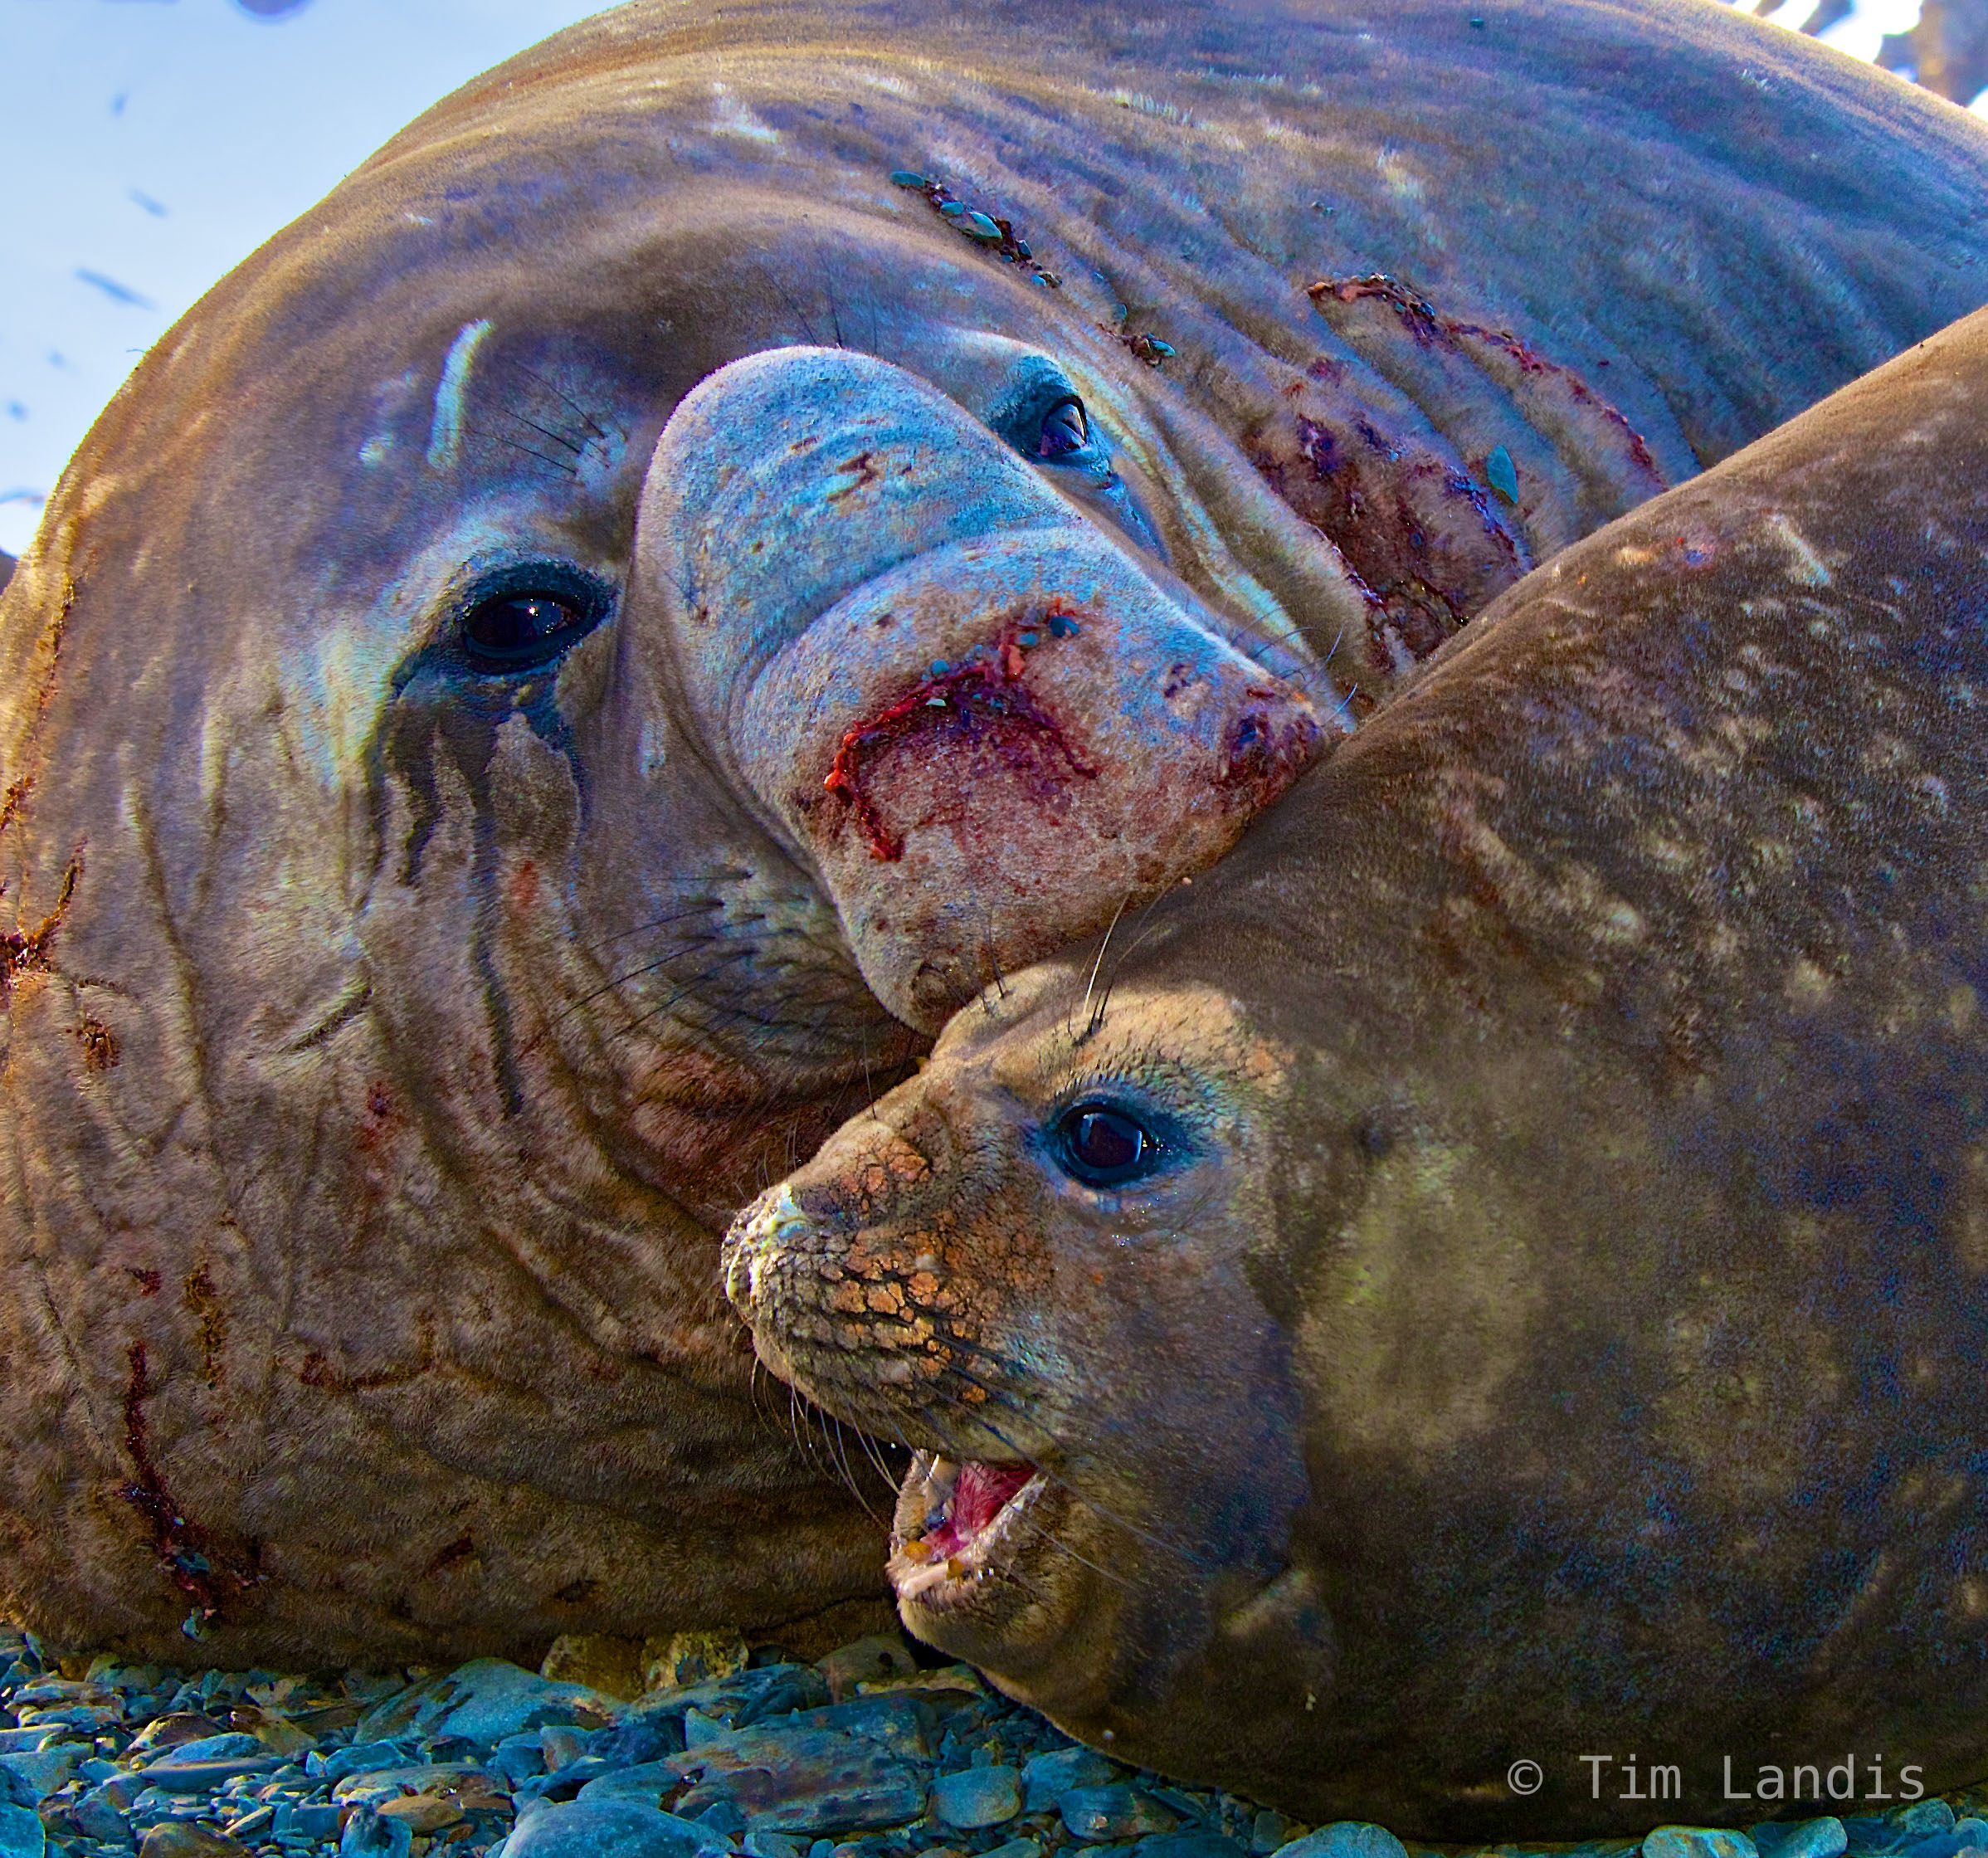 S georgia Island, affection, alone at last, dating, love, mating rituals, pairing, pride, southern elephant seals, photo